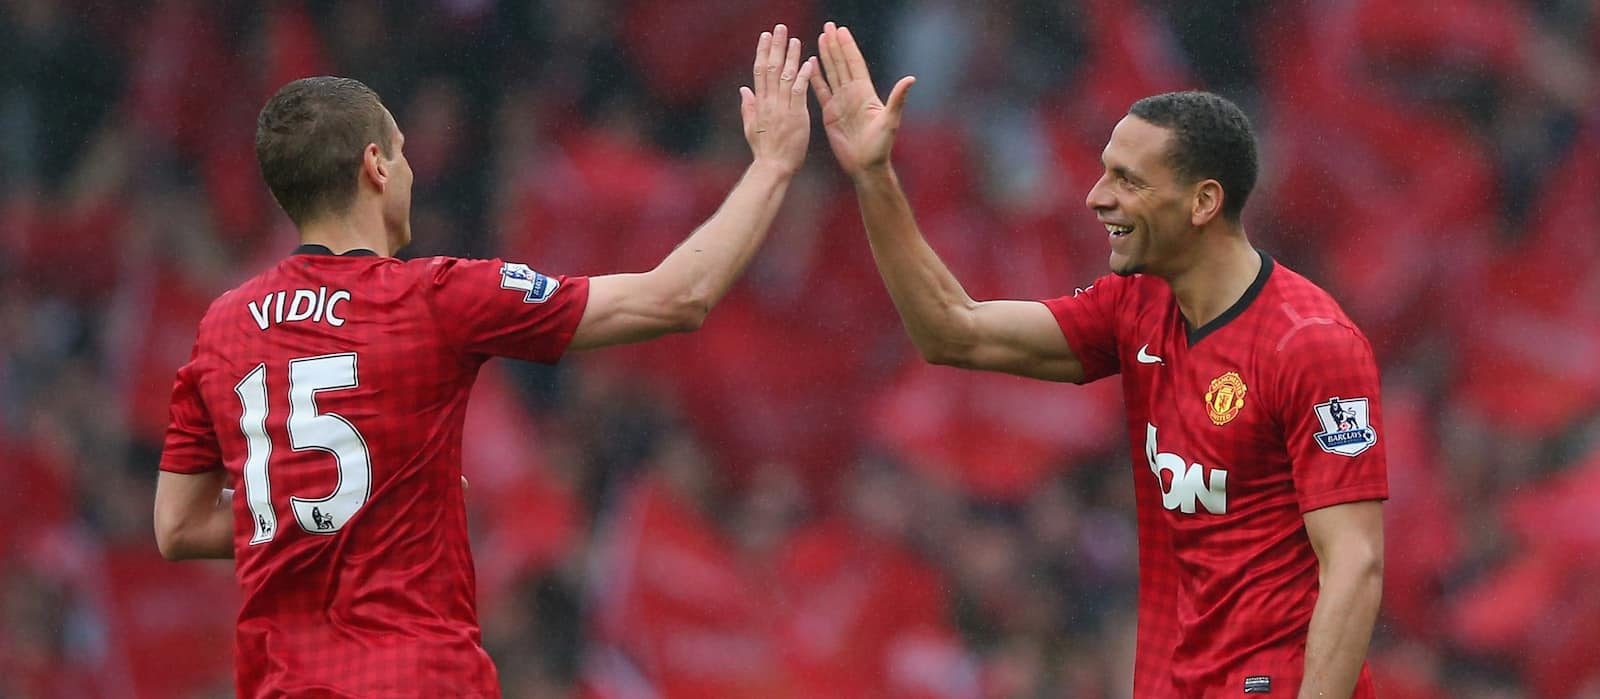 Liverpool defender Joe Gomez reveals he idolises Rio Ferdinand